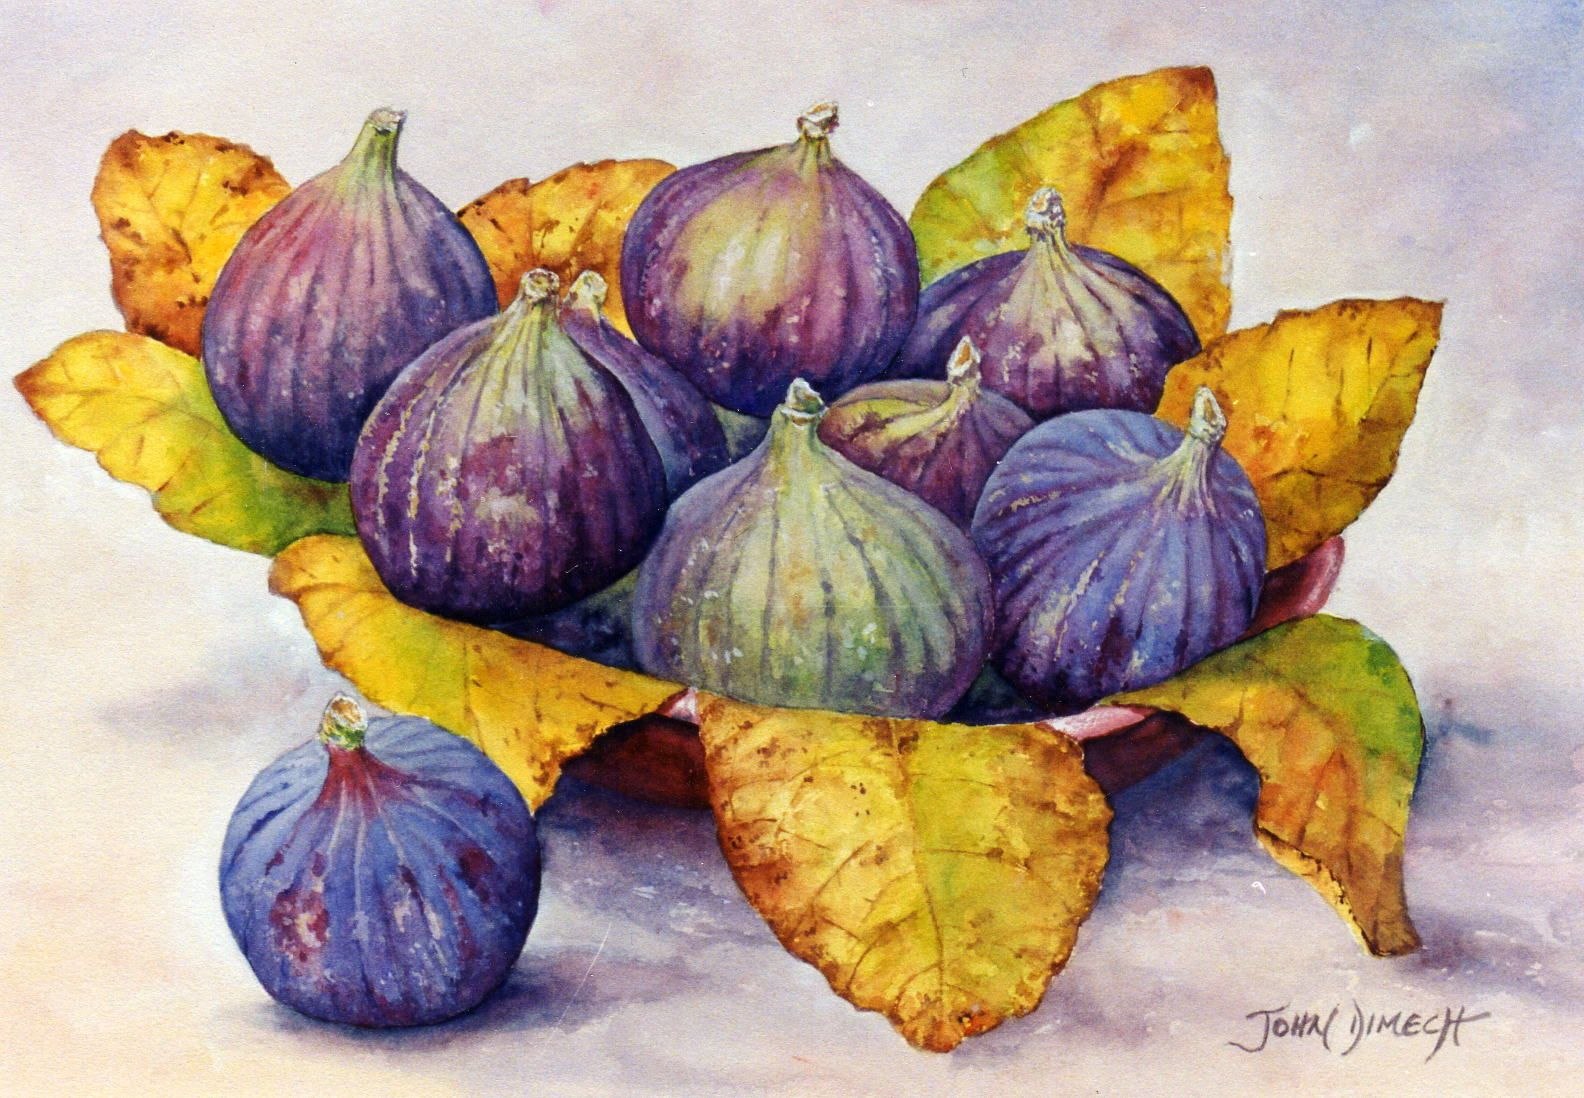 John Dimech Watercolor Illustration Botanique Dessin Fruits